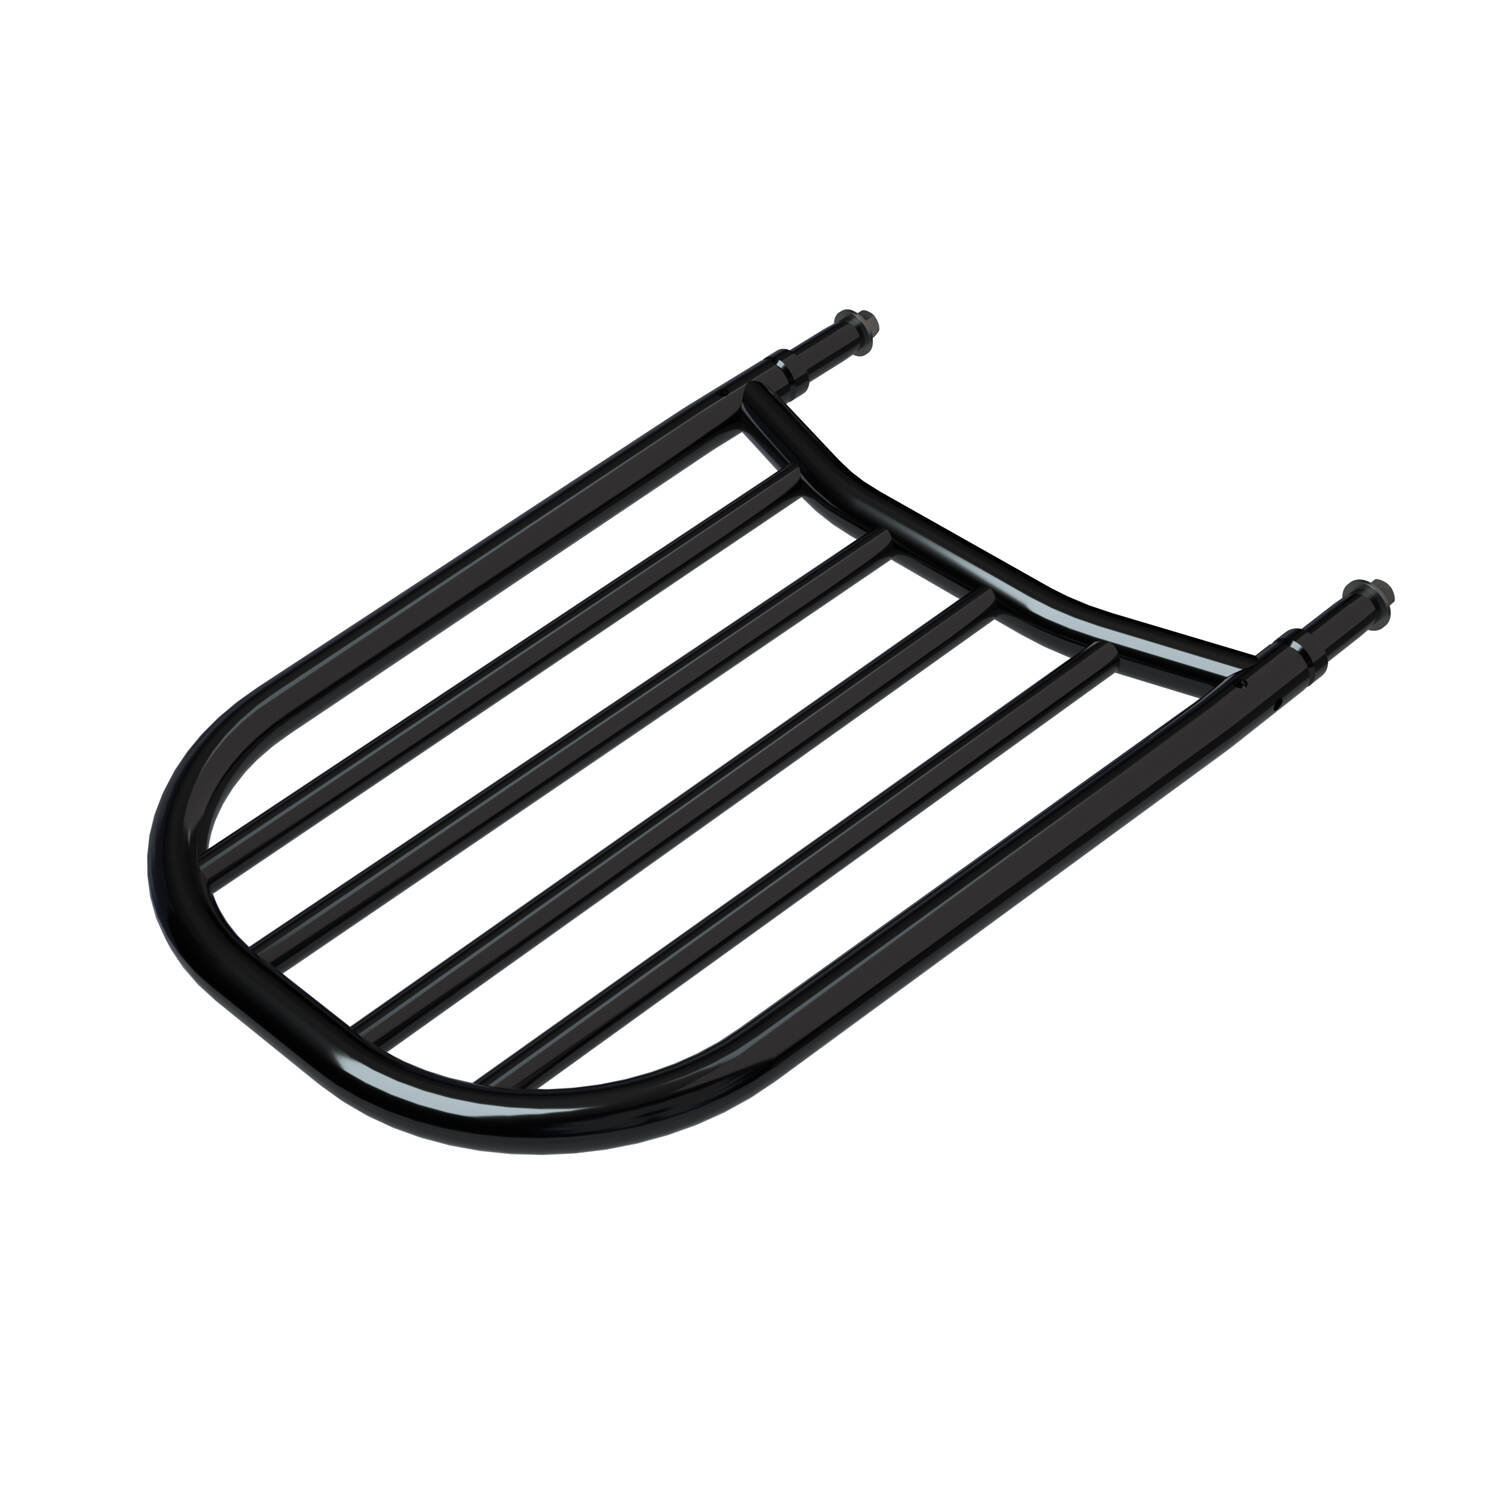 Sissy Bar Luggage Rack - Gloss Black